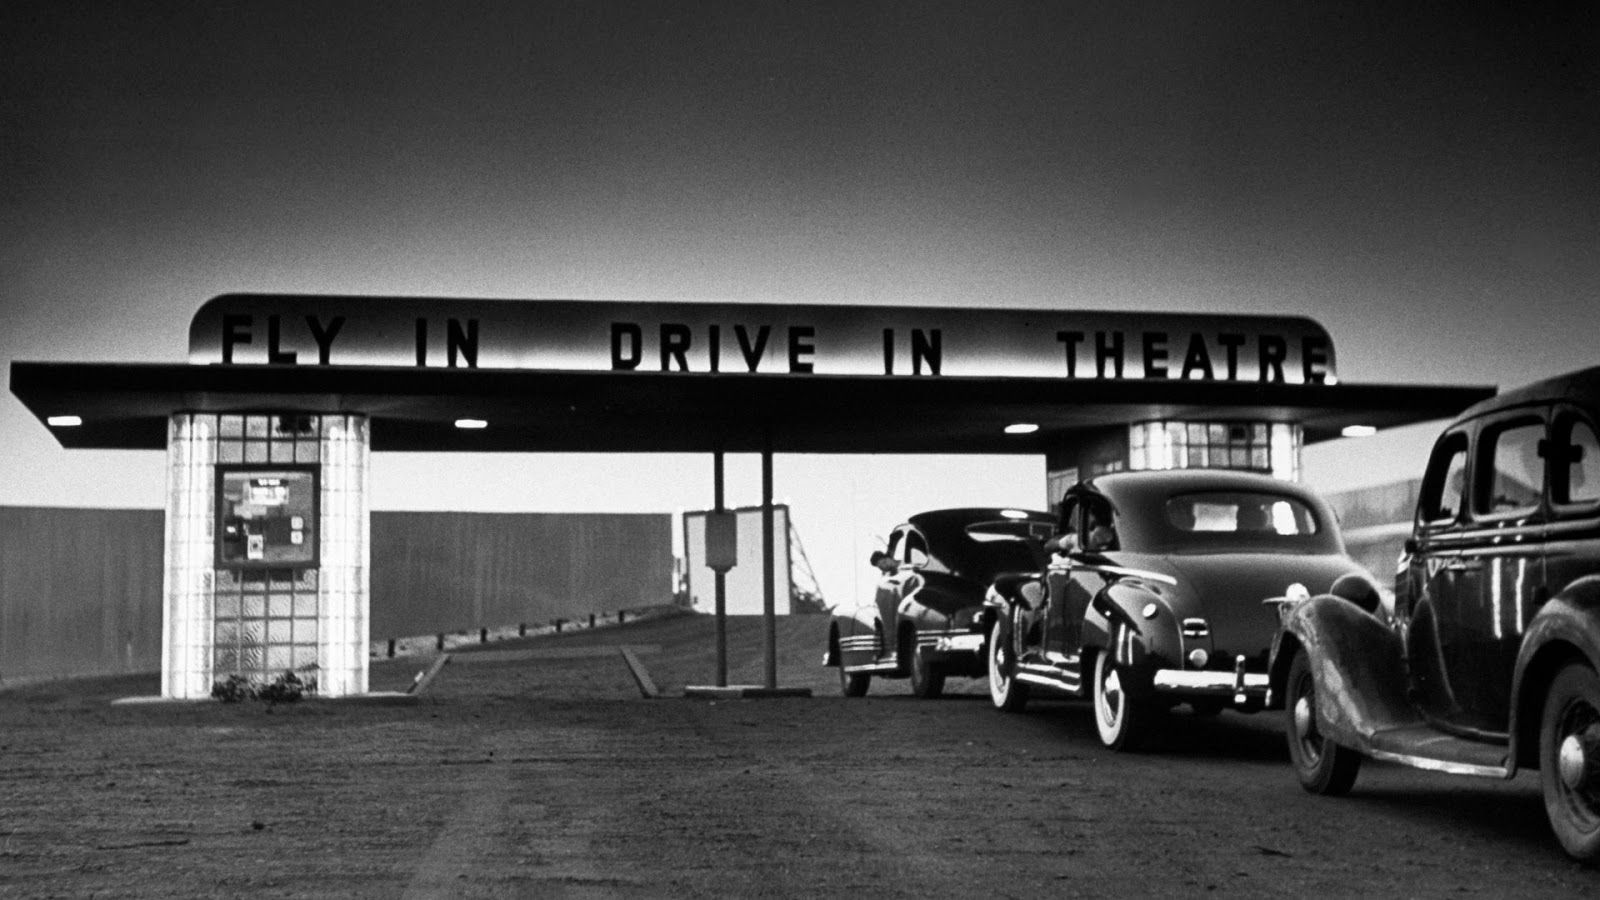 Customers arriving at the flyin drivein theater in wall